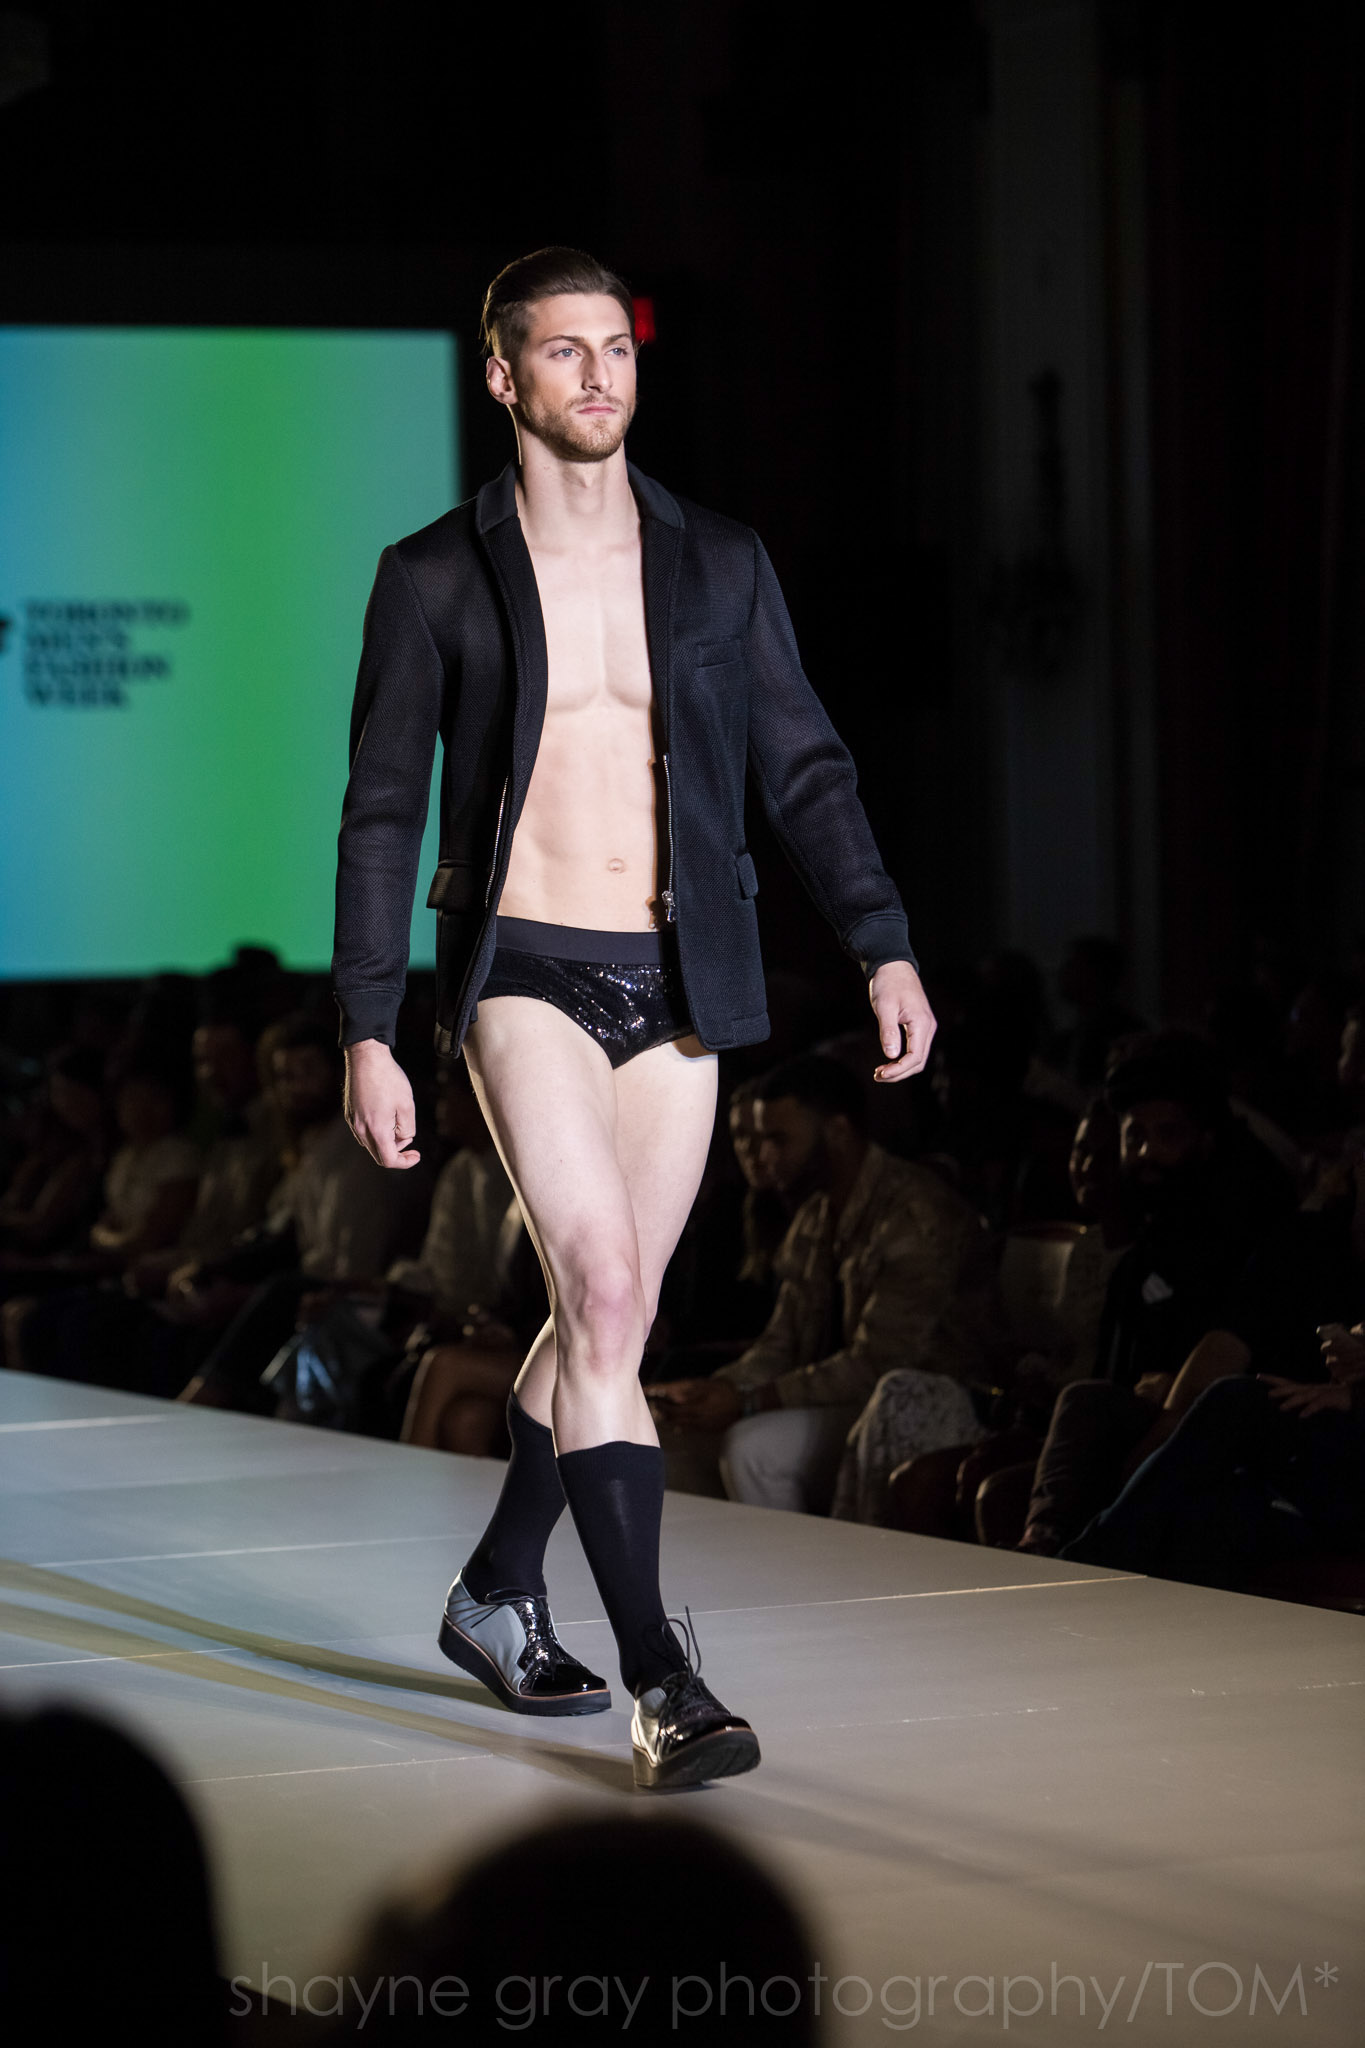 Shayne-Gray-Toronto-men's-fashion_week-TOM-noel-crisostomo-8484.jpg